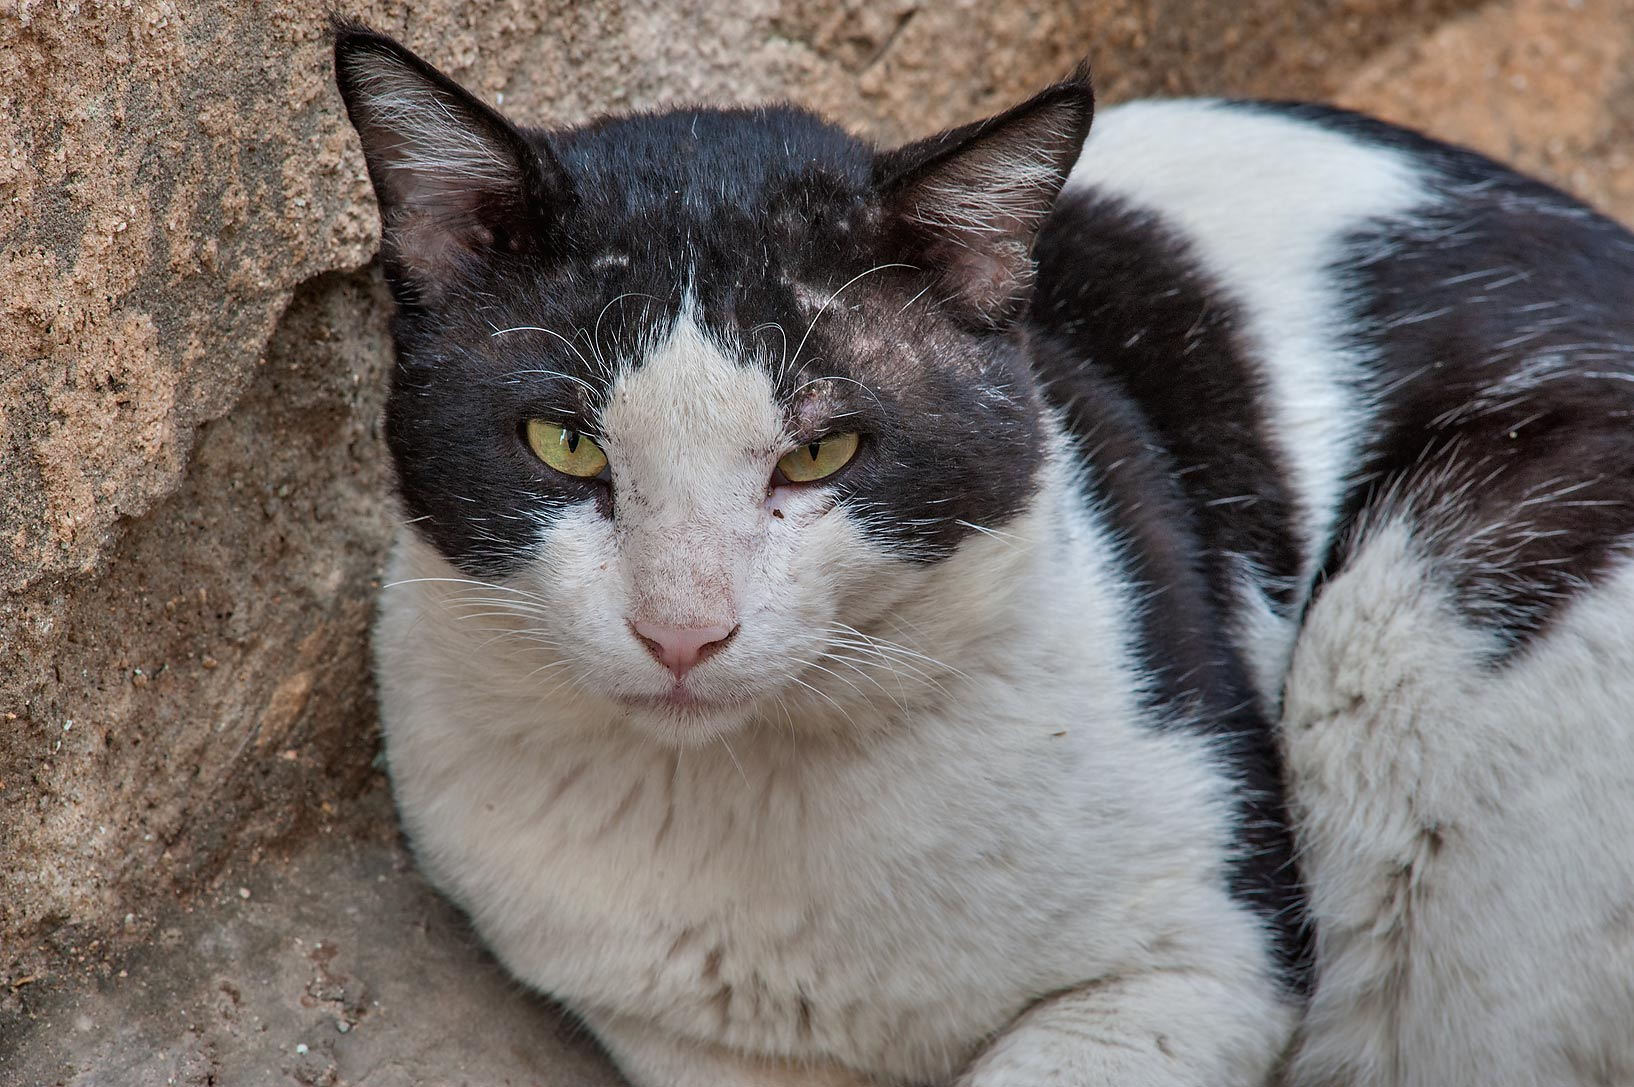 Close up of a black and white cat near Abdullah...St. in Musheirib area. Doha, Qatar